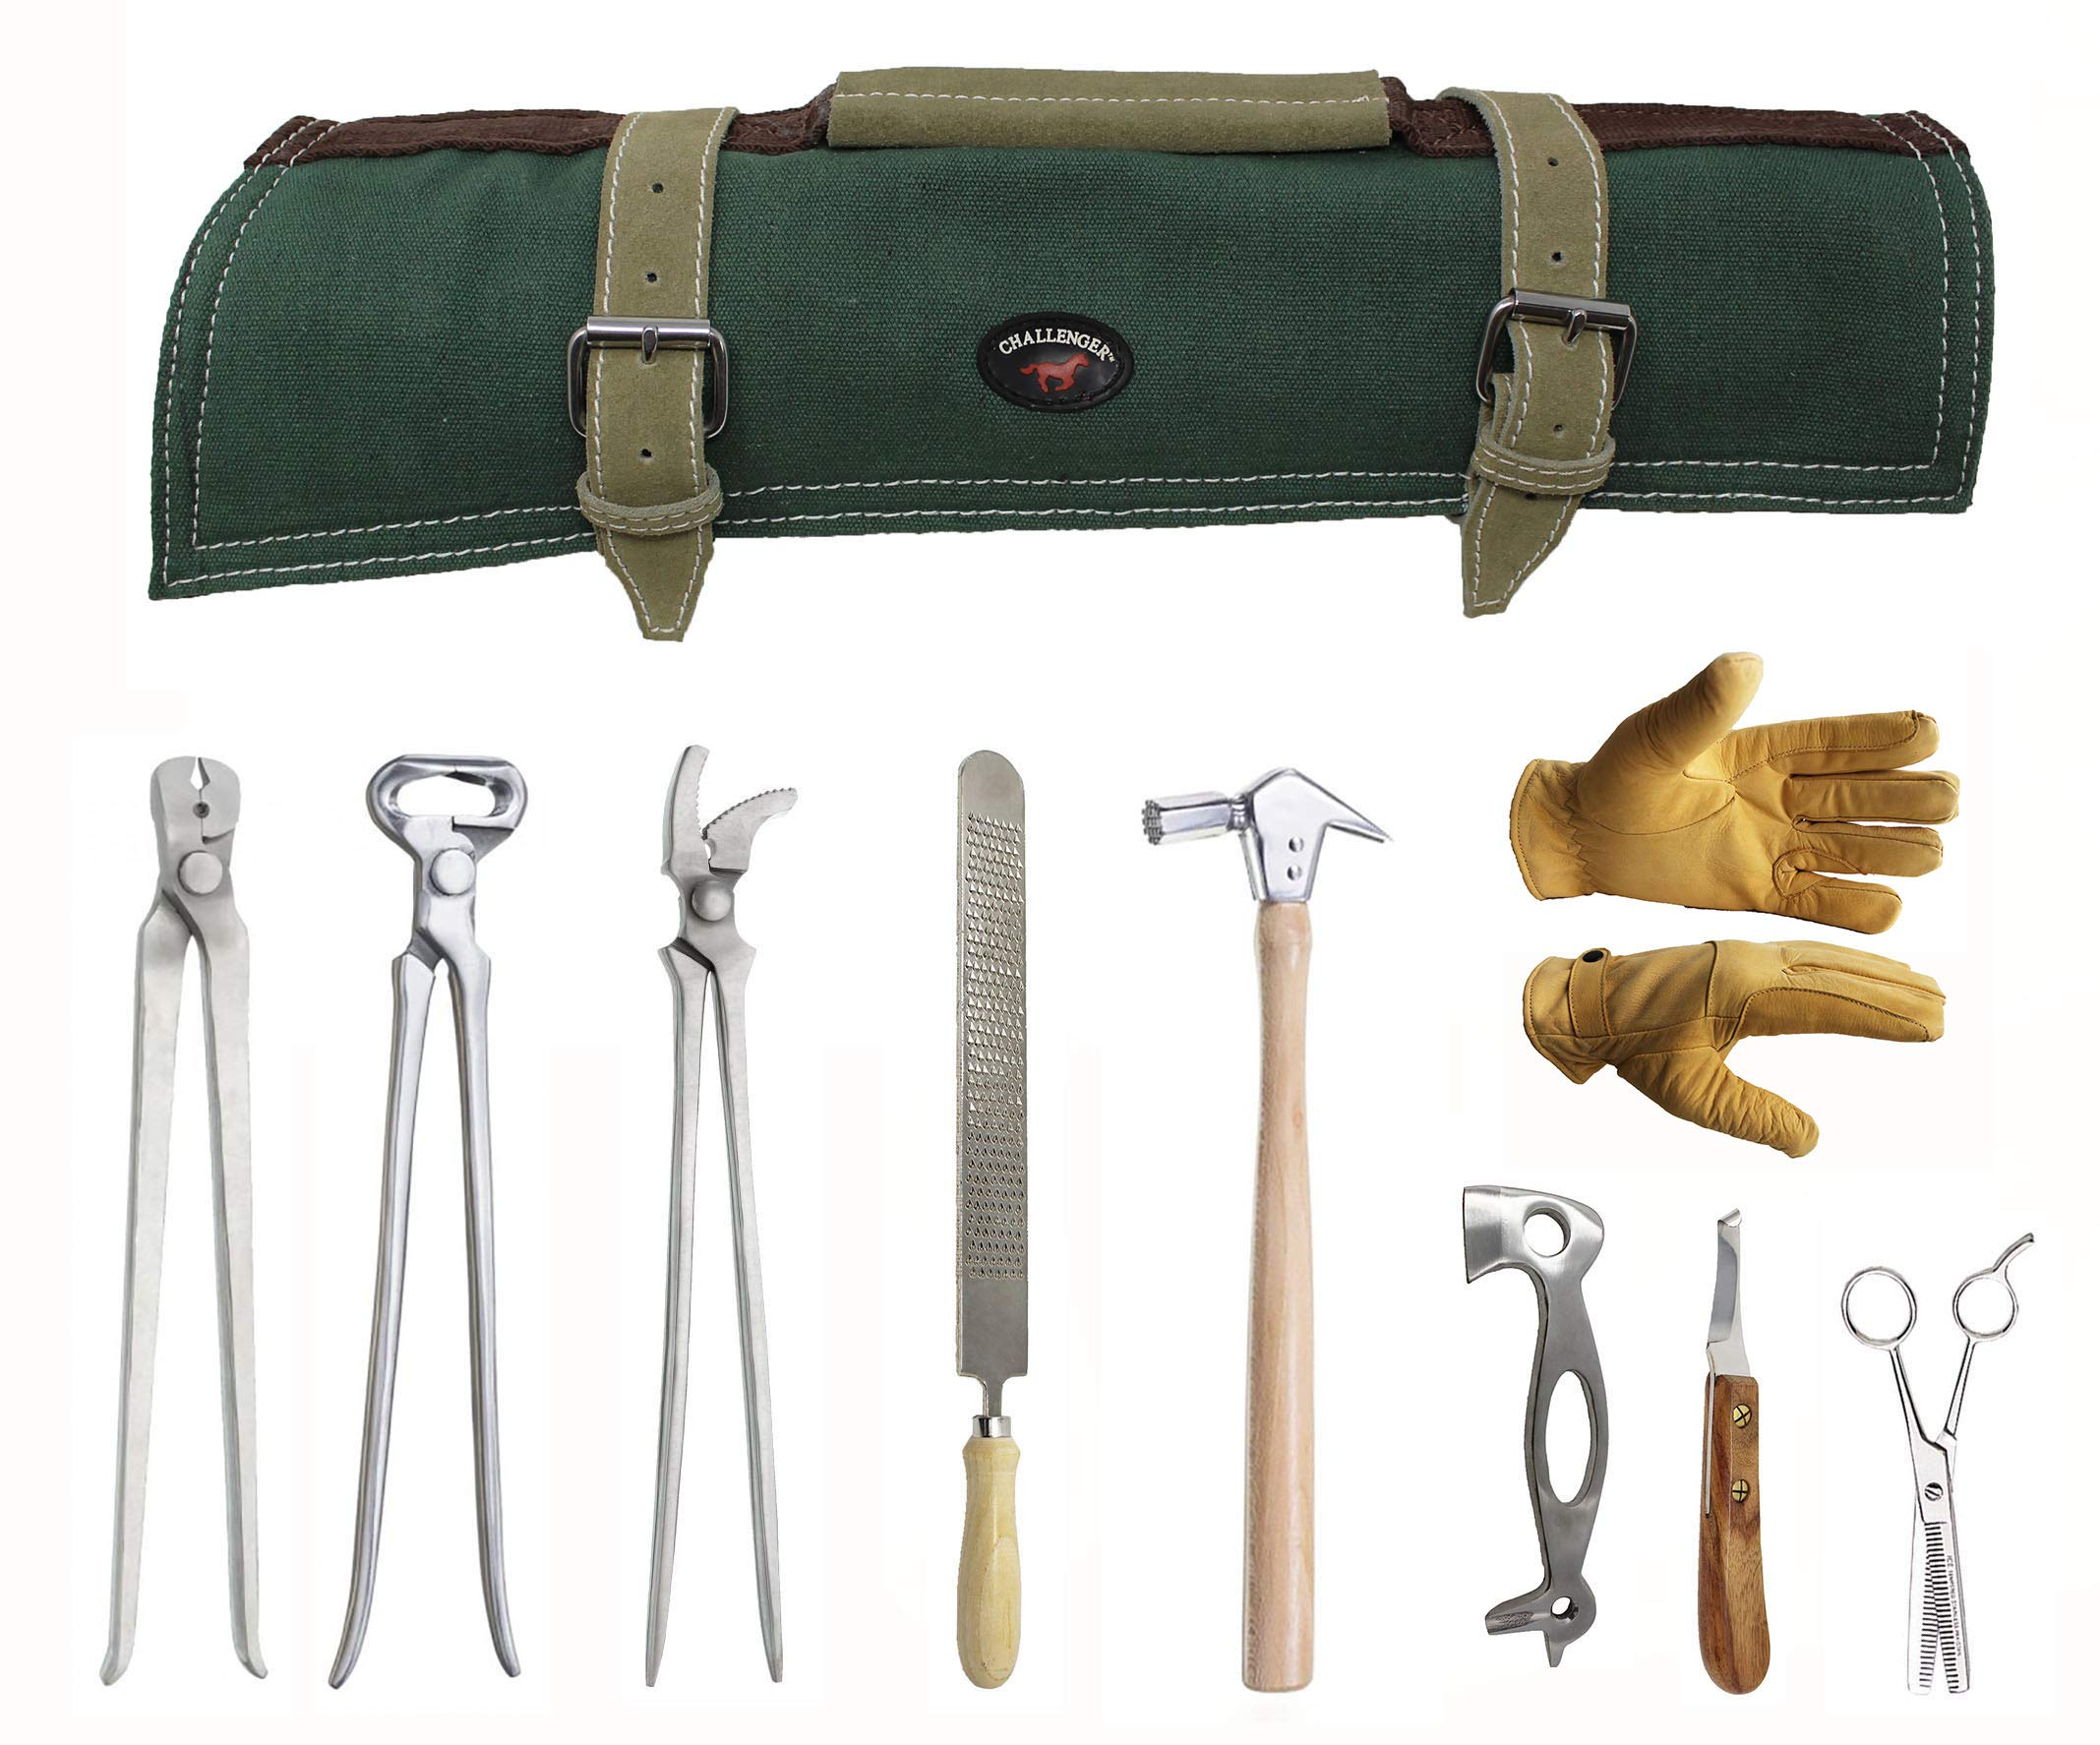 ProRider USA 8 Piece Horse Shoe Farrier Hoof Grooming Tool Kit w/Canvas Carry Bag 98475 by ProRider USA